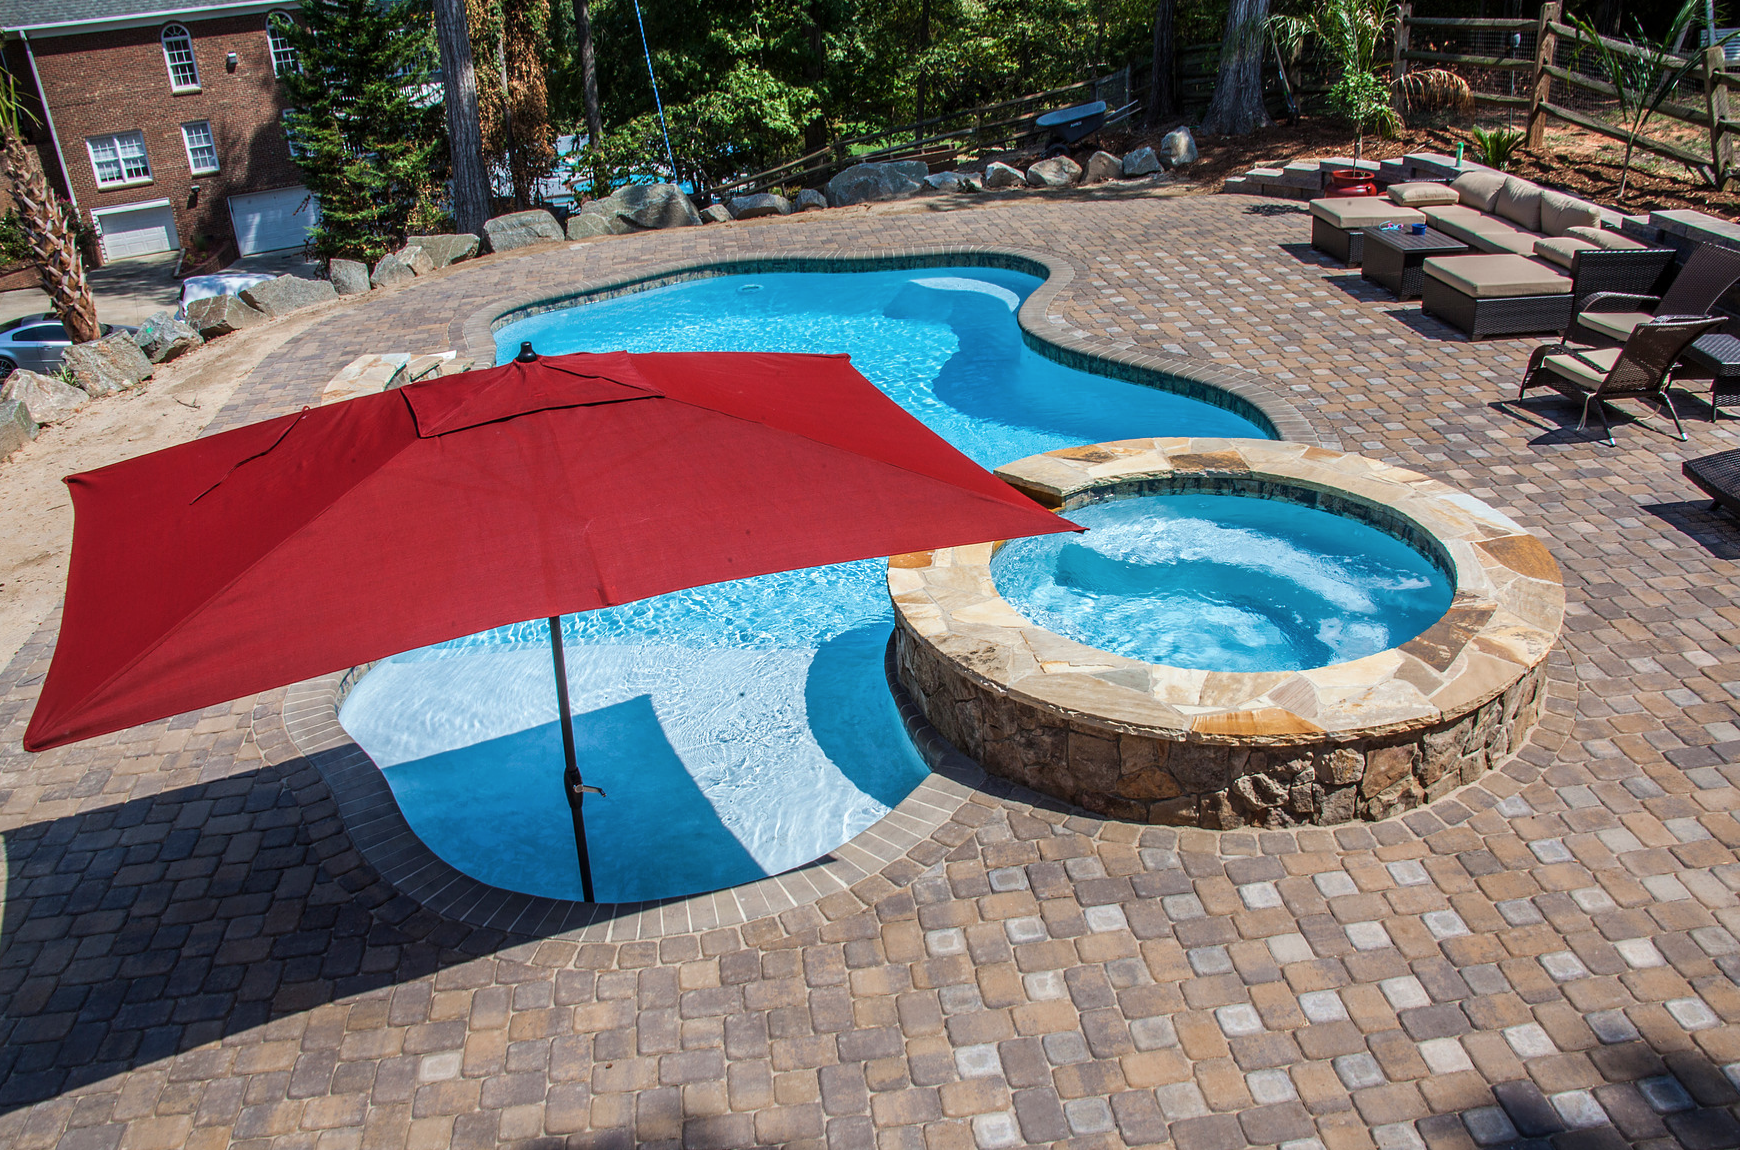 CPC Pools Installs High End Concrete Inground Pools in Denver North Carolina 704-799-5236